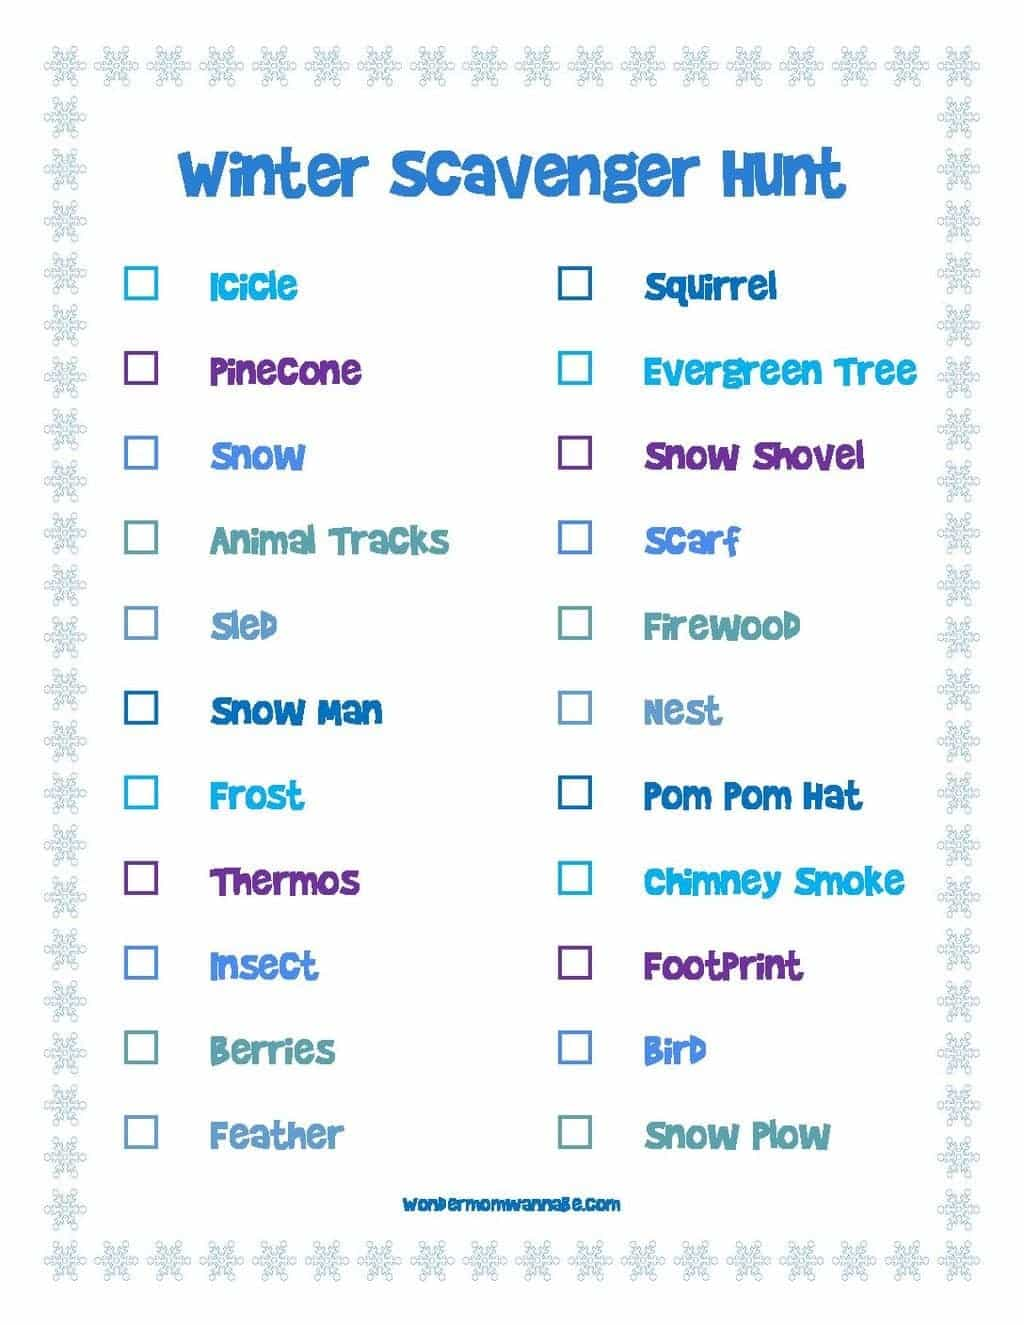 Printable Winter Scavenger Hunt